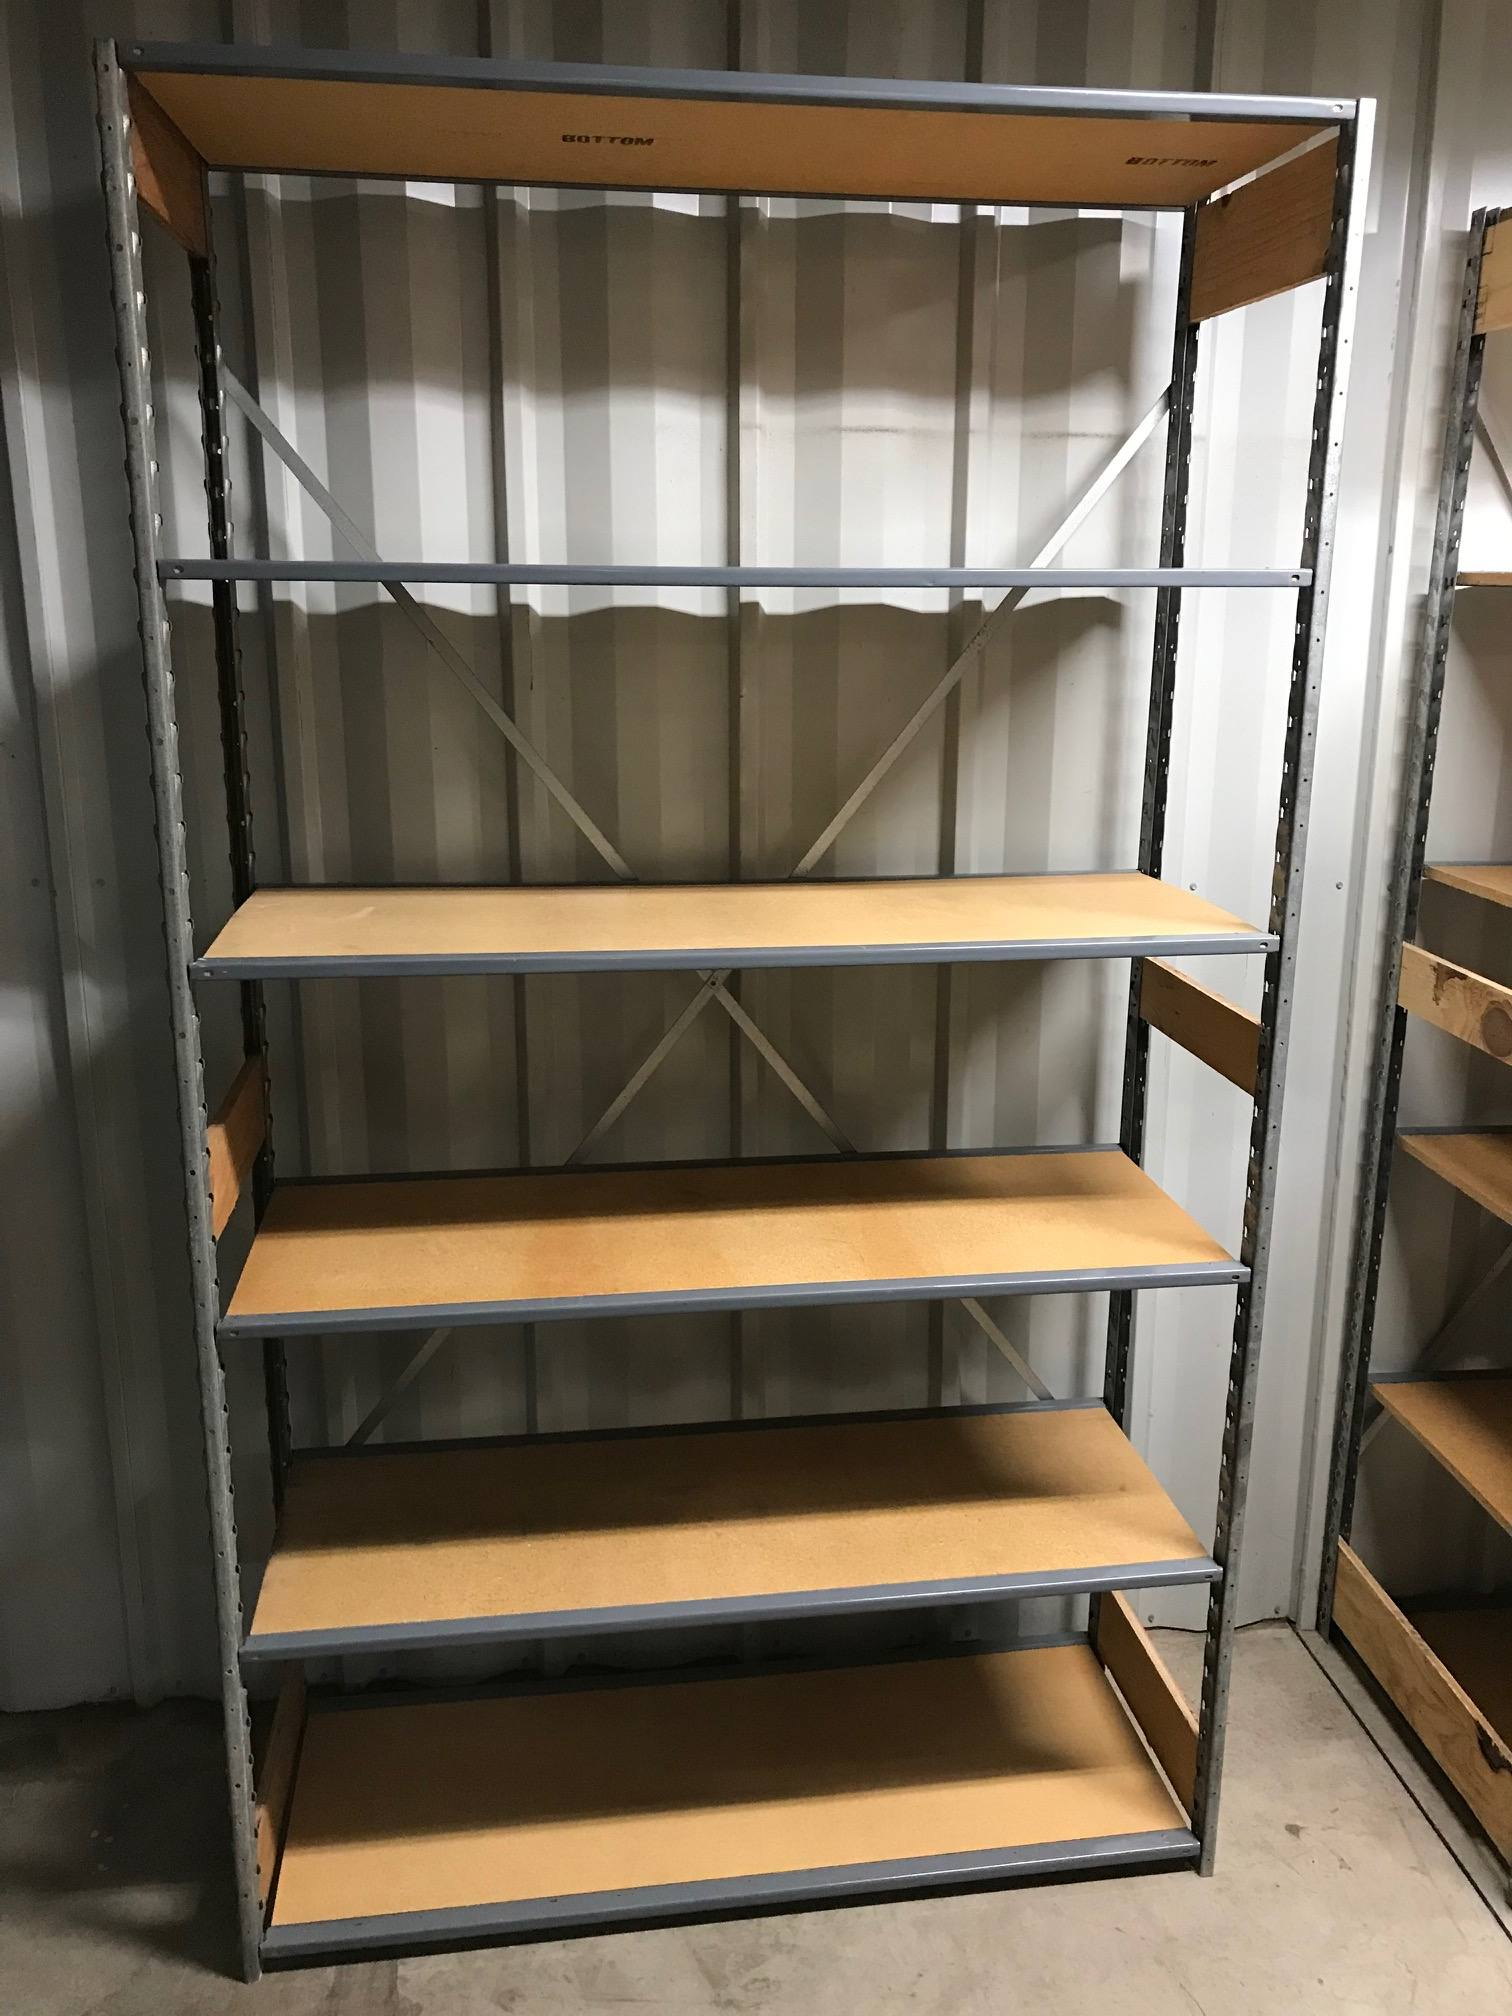 """18""""x 48"""" (84"""" Tall) - Lozier Steel/wood Shelving With 6 Shelves - Used"""